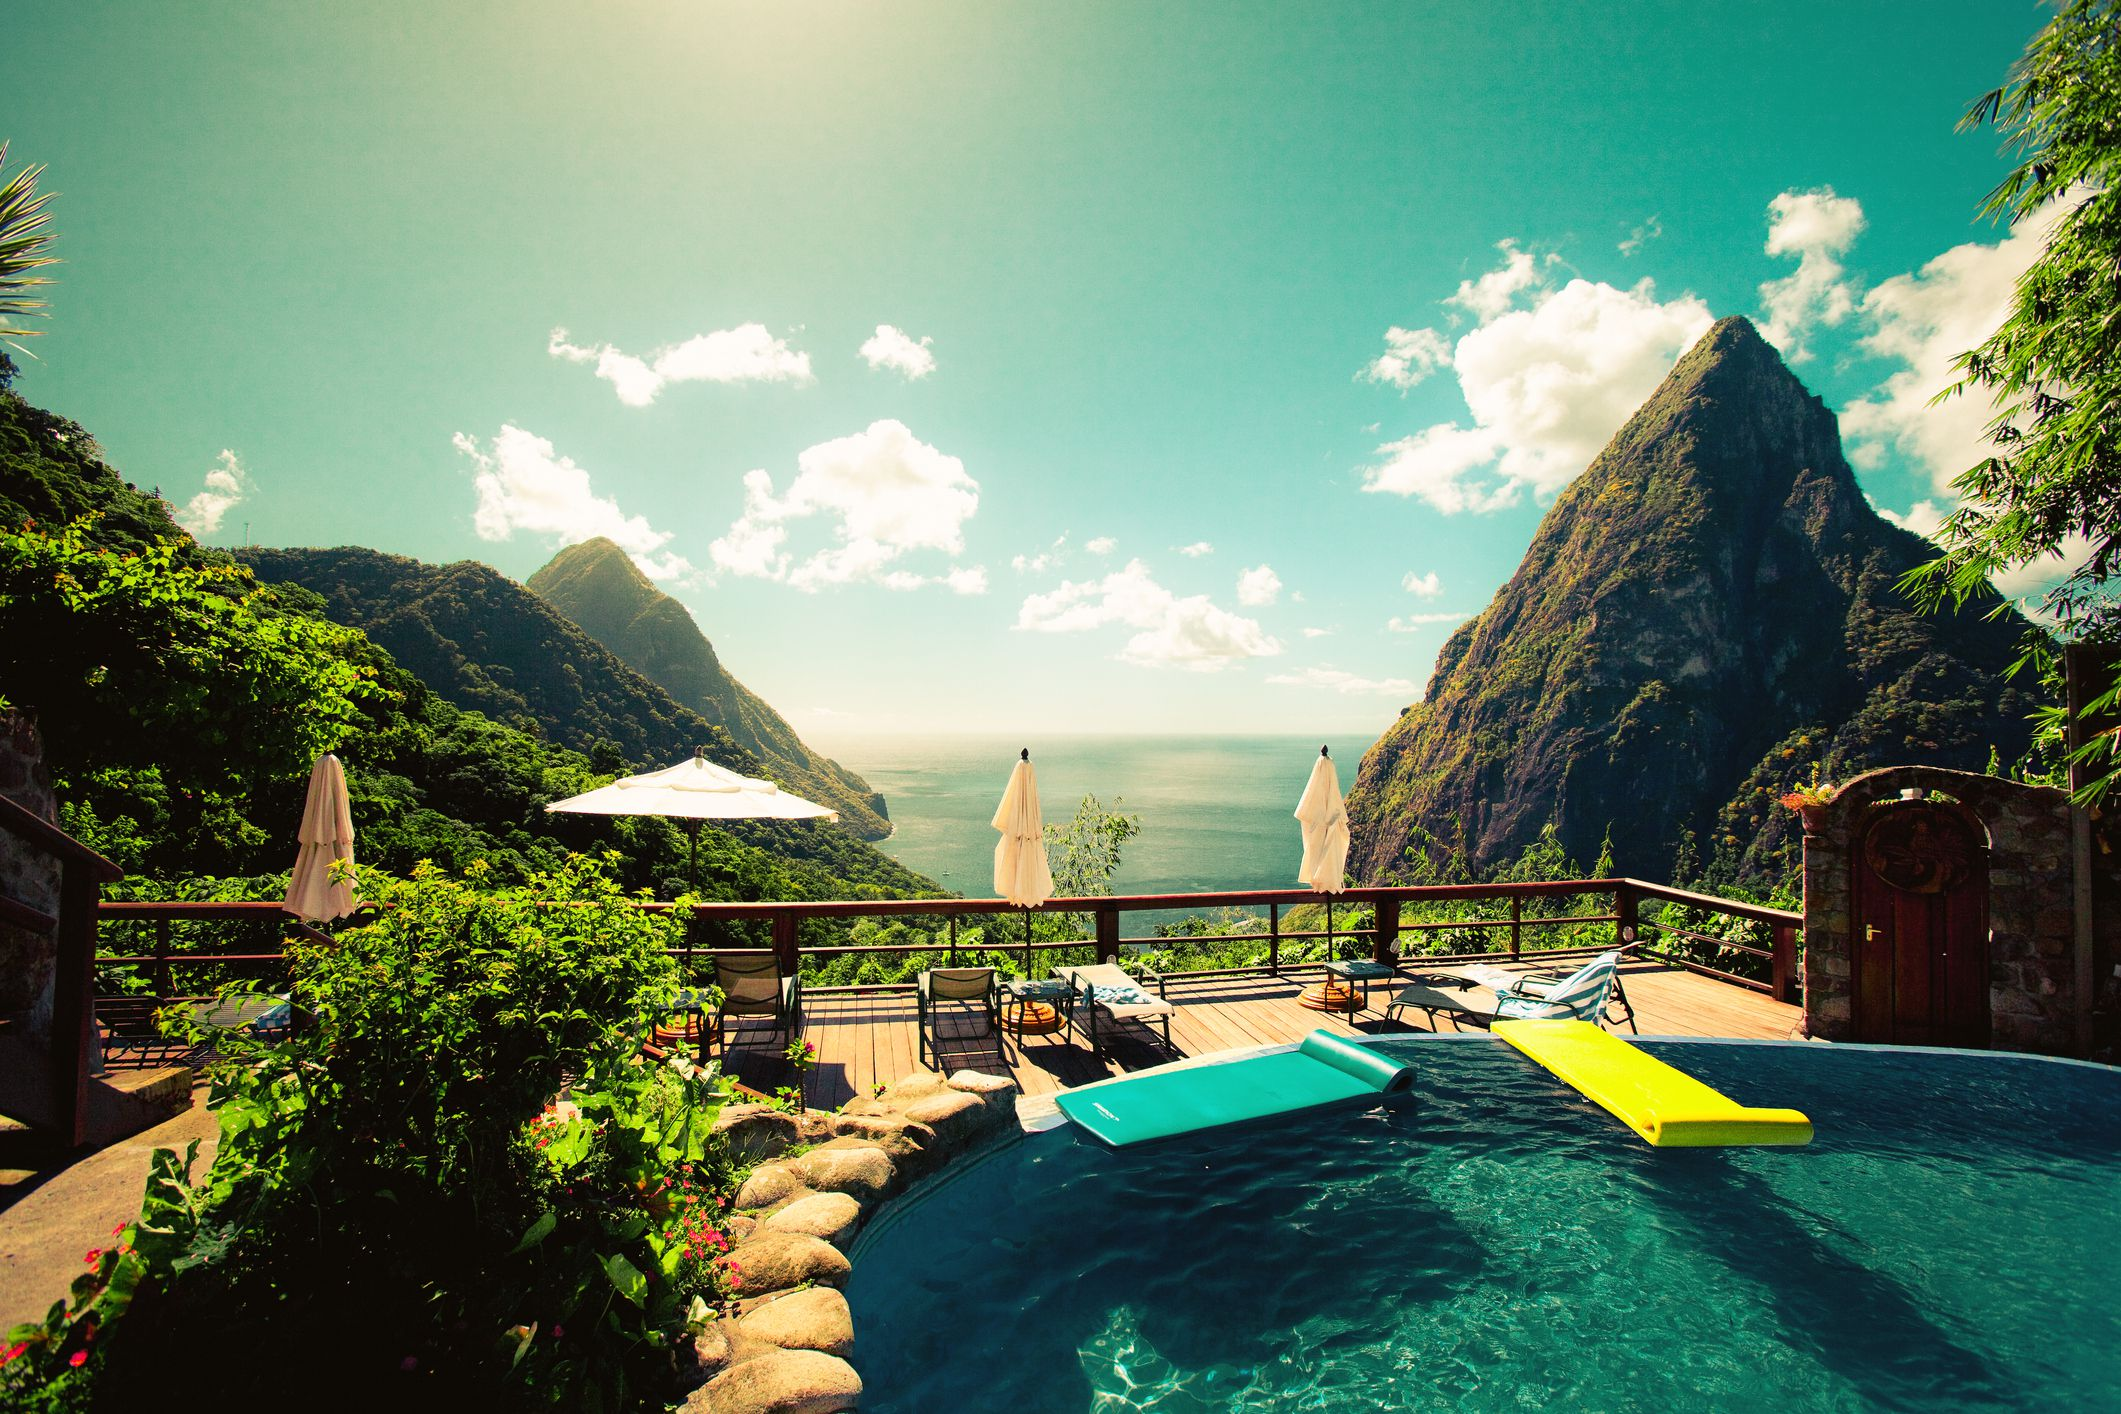 St. Lucia Travel Guide